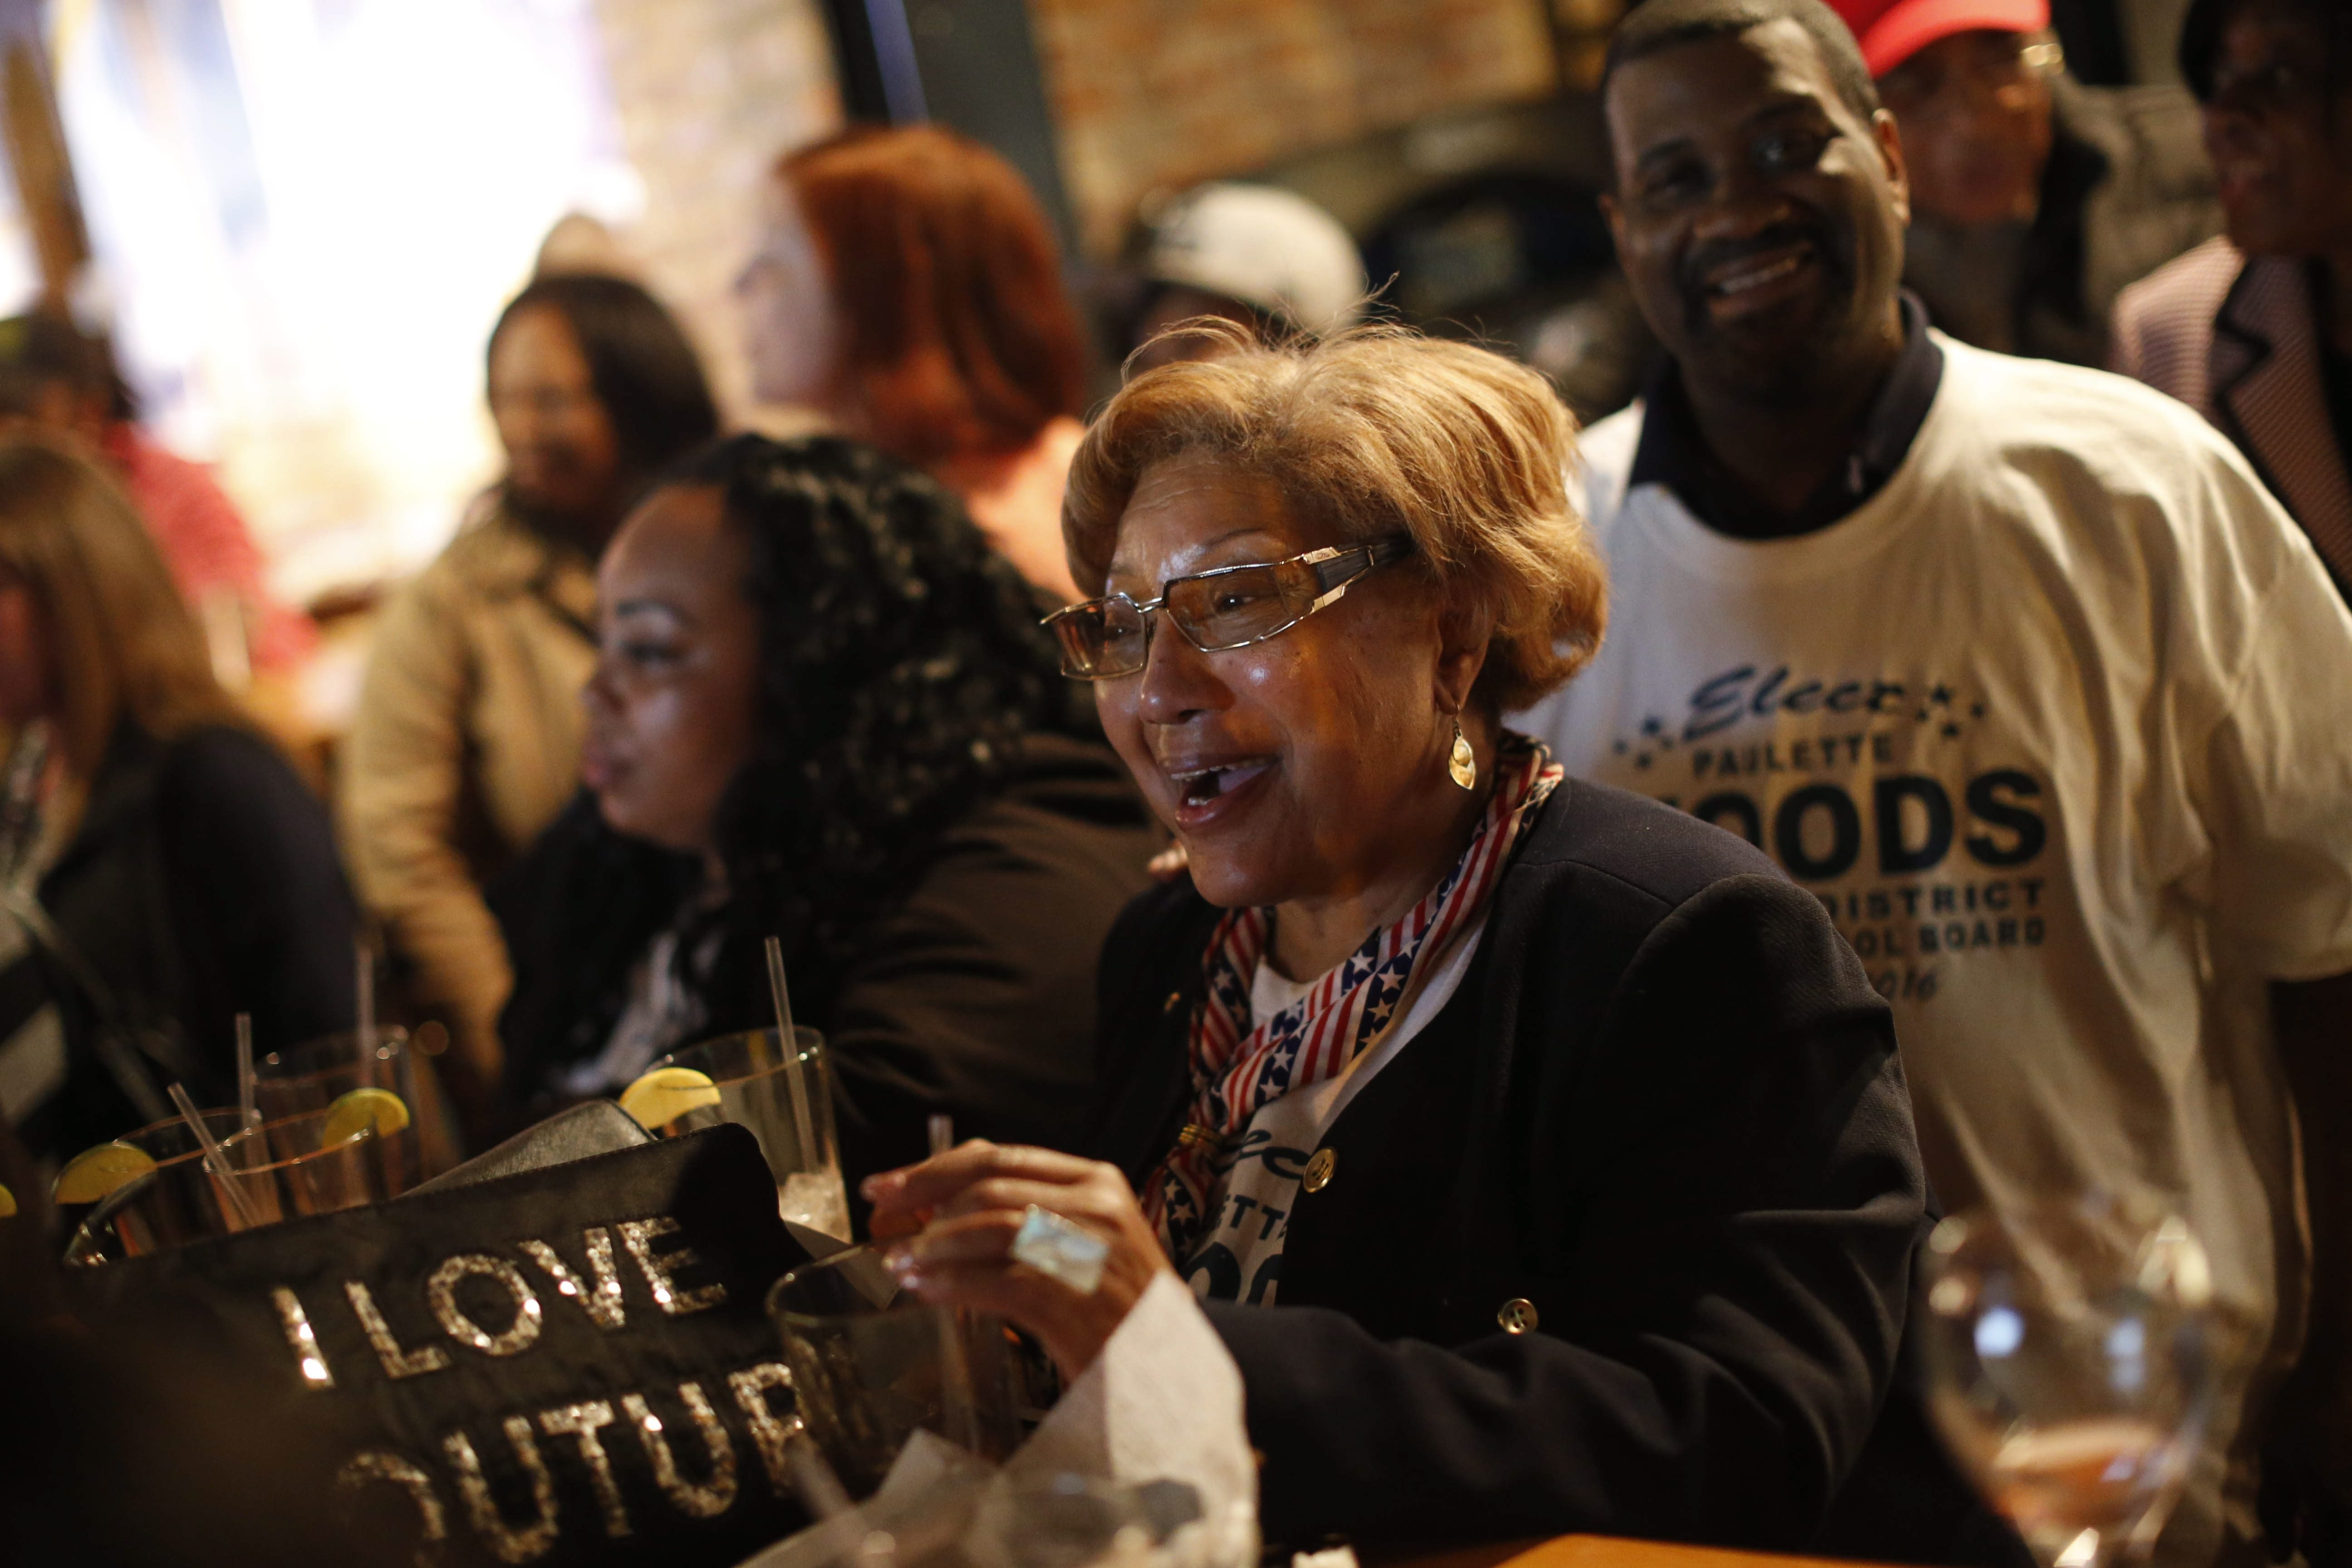 Paulette Woods celebrates her election to the Buffalo School Board during a celebration hosted by the Buffalo Teachers Federation at Pearl Street Grill, Tuesday, May 3, 2016.  (Derek Gee/Buffalo News)